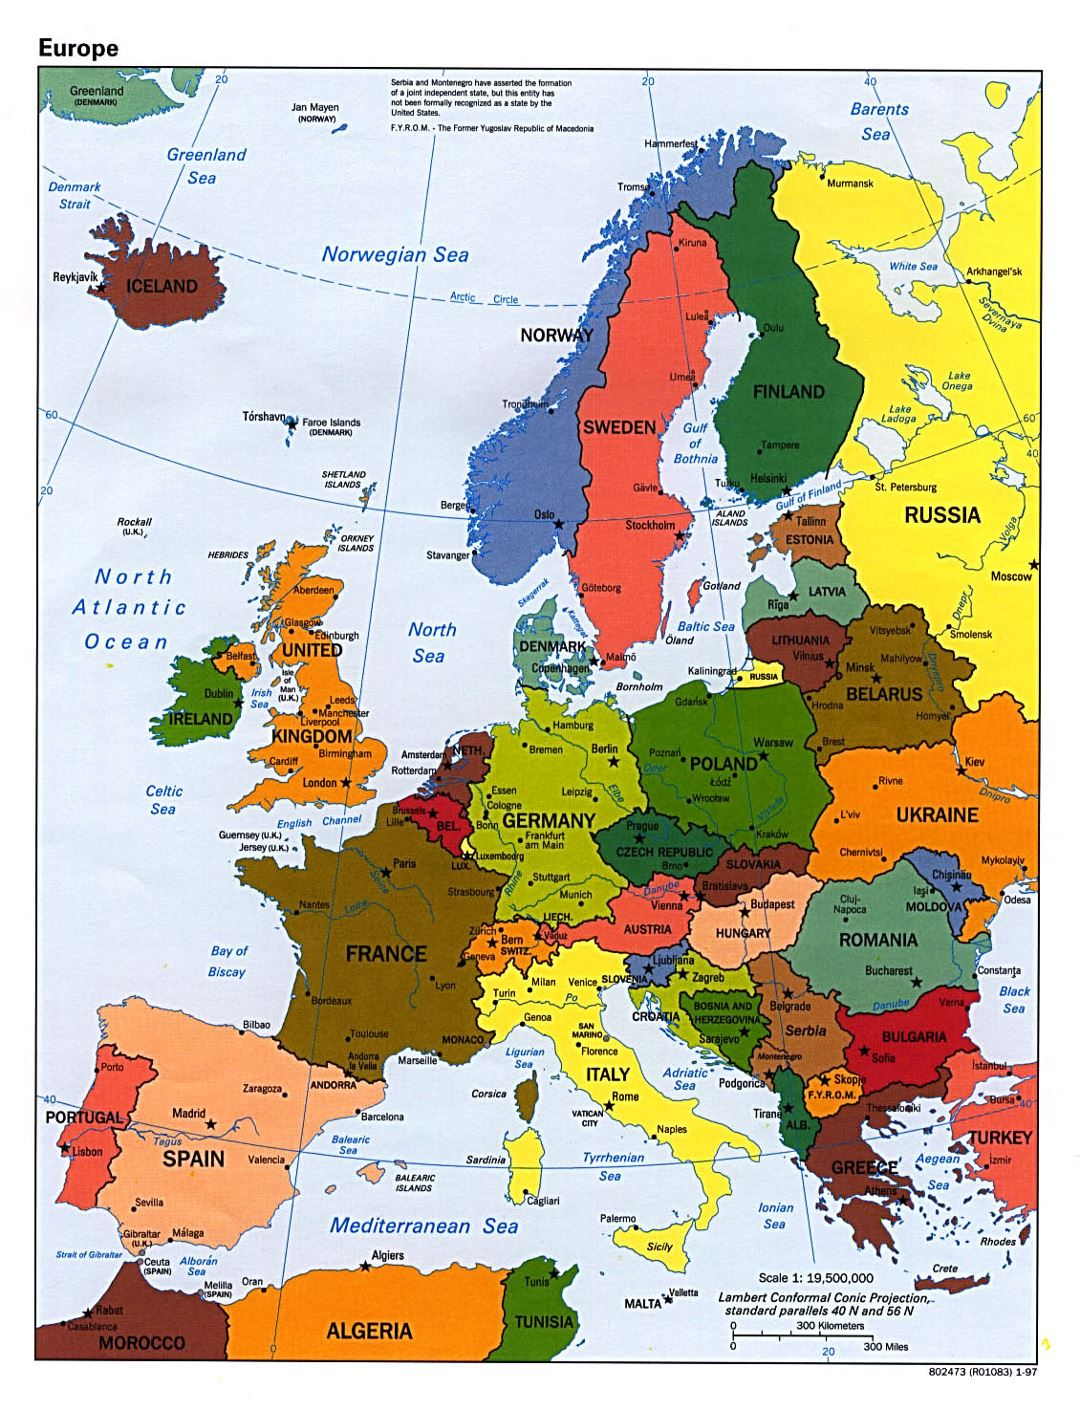 Detailed political map of Europe with capitals and major cities - 1997